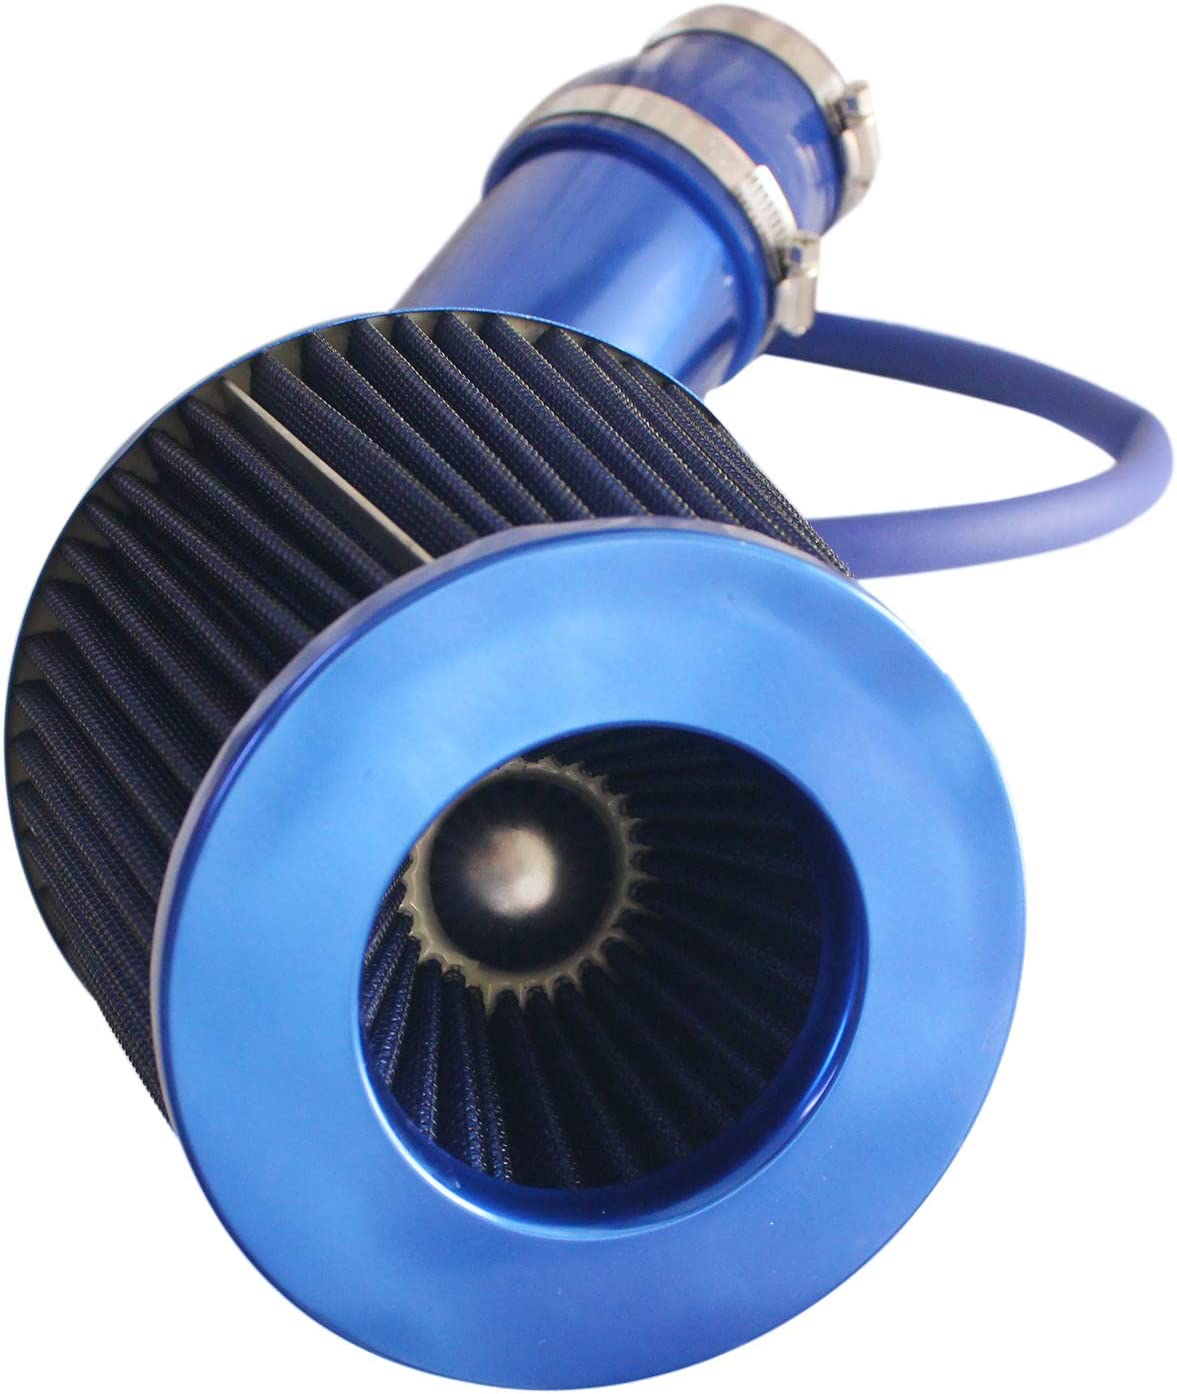 RONTEIX Universal High Flow 3 Inch Cold Air Intake Induction Pipe Hose Kit with Air Filter Blue